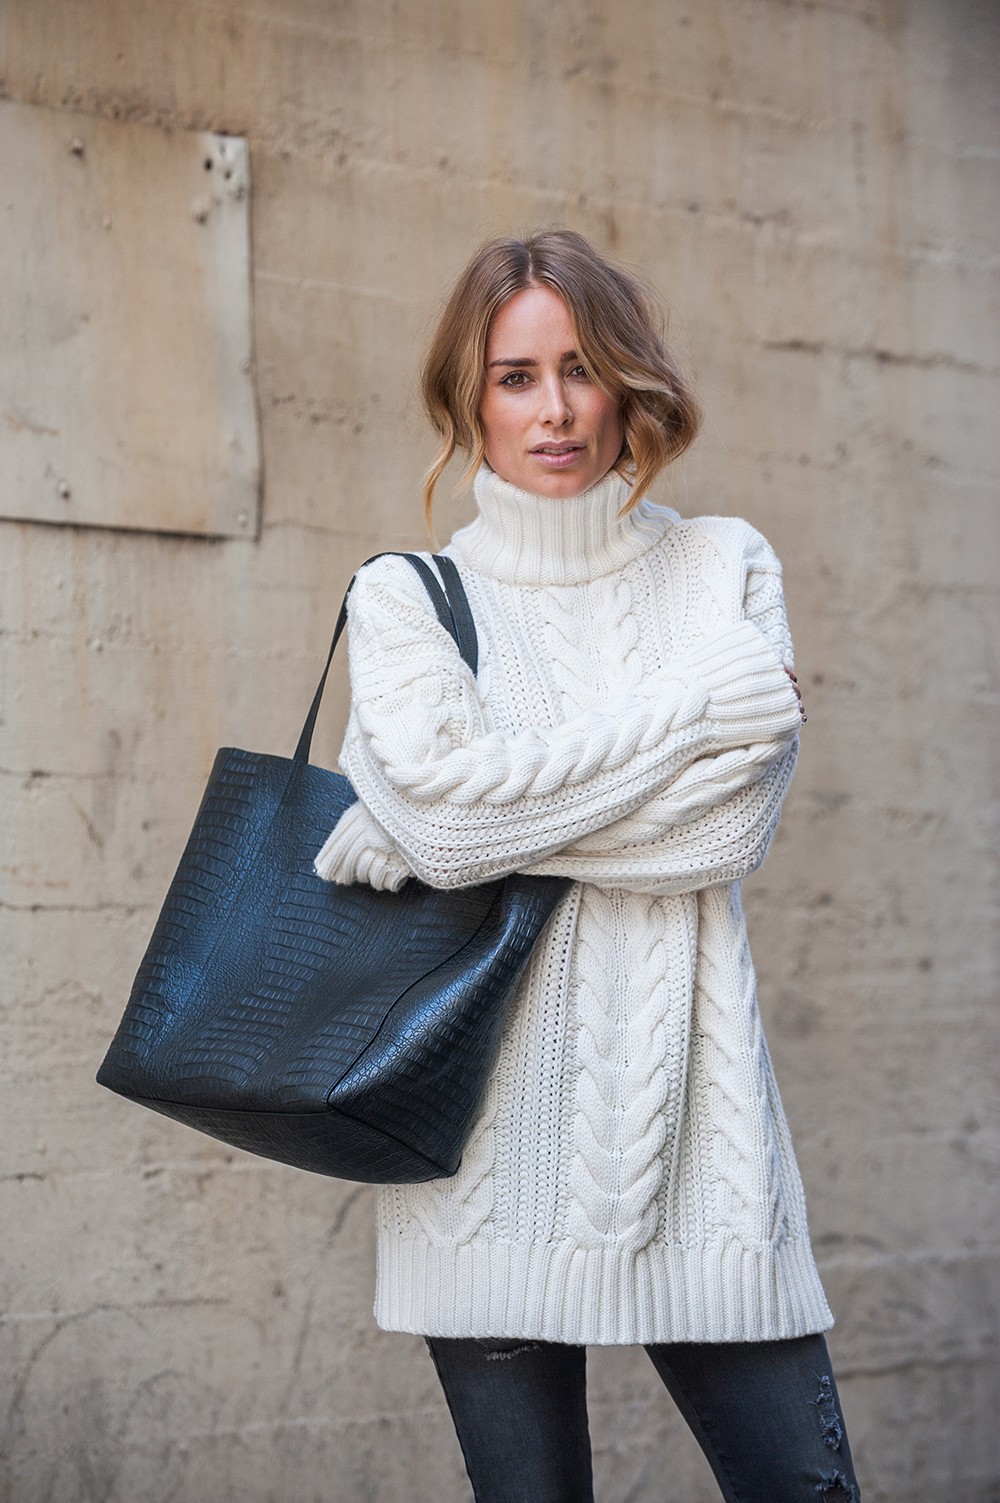 Anine Bing wears a gorgeous cream turtle neck knit over distressed skinny jeans, accessorising with a black faux snakeskin bag. Outfit: Anine Bing.